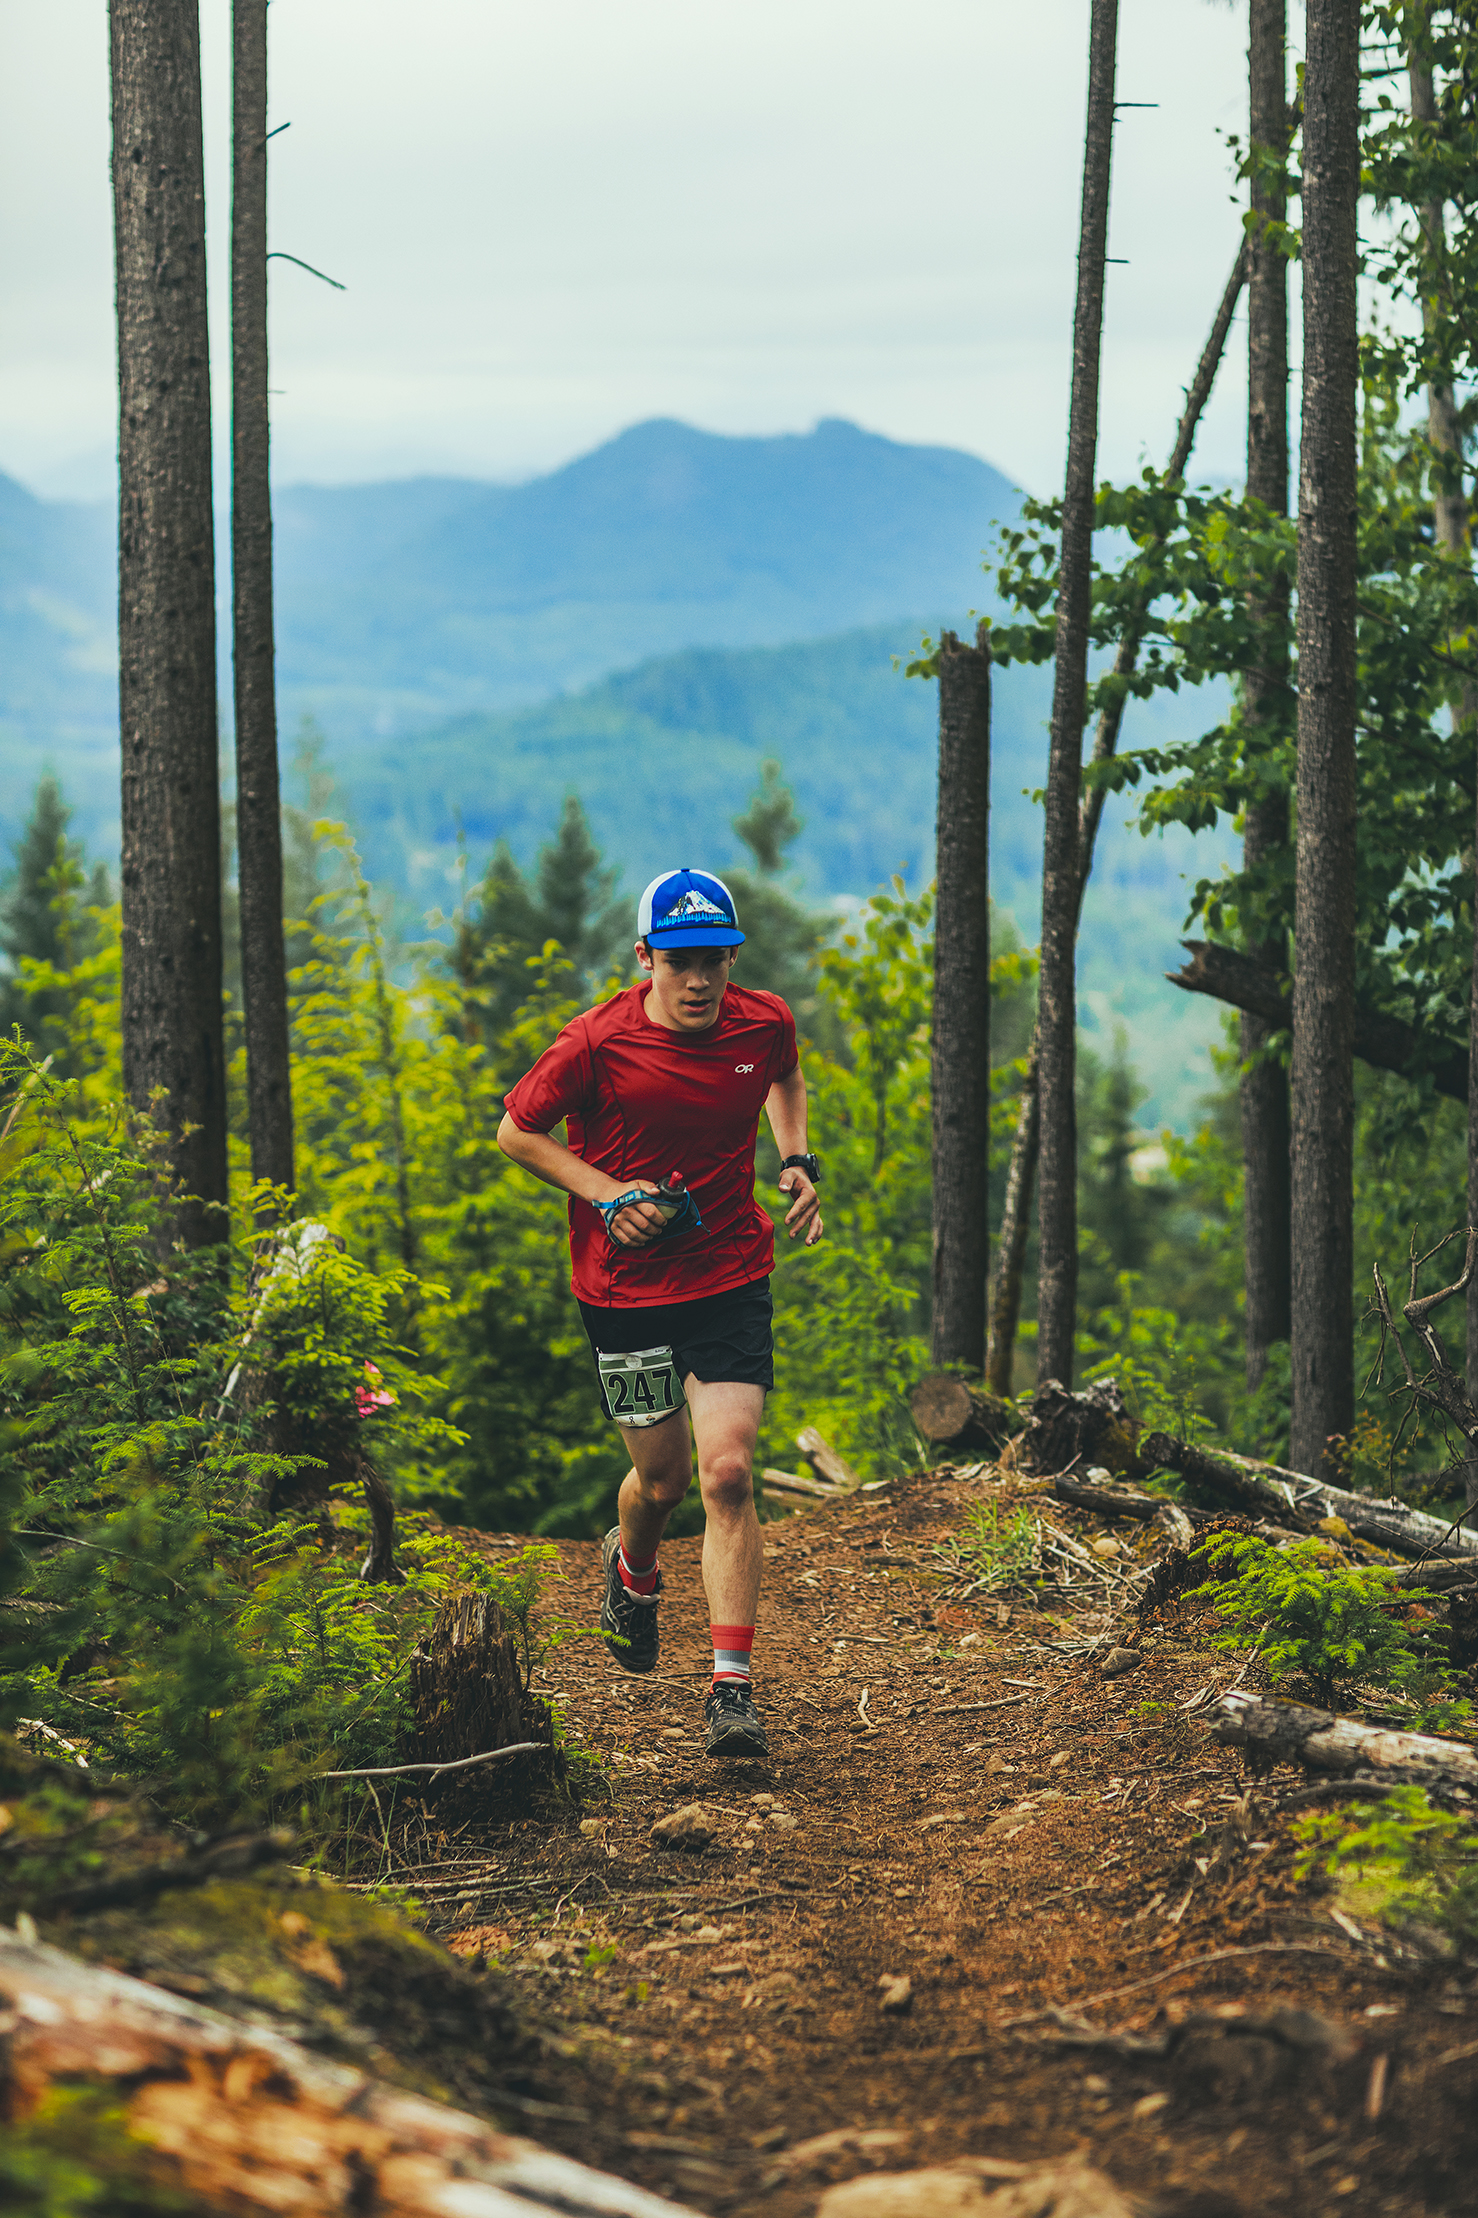 Fraser Valley Trail Races - Bear Mountain - IMG_1651 by Brice Ferre Studio - Vancouver Portrait Adventure and Athlete Photographer.jpg